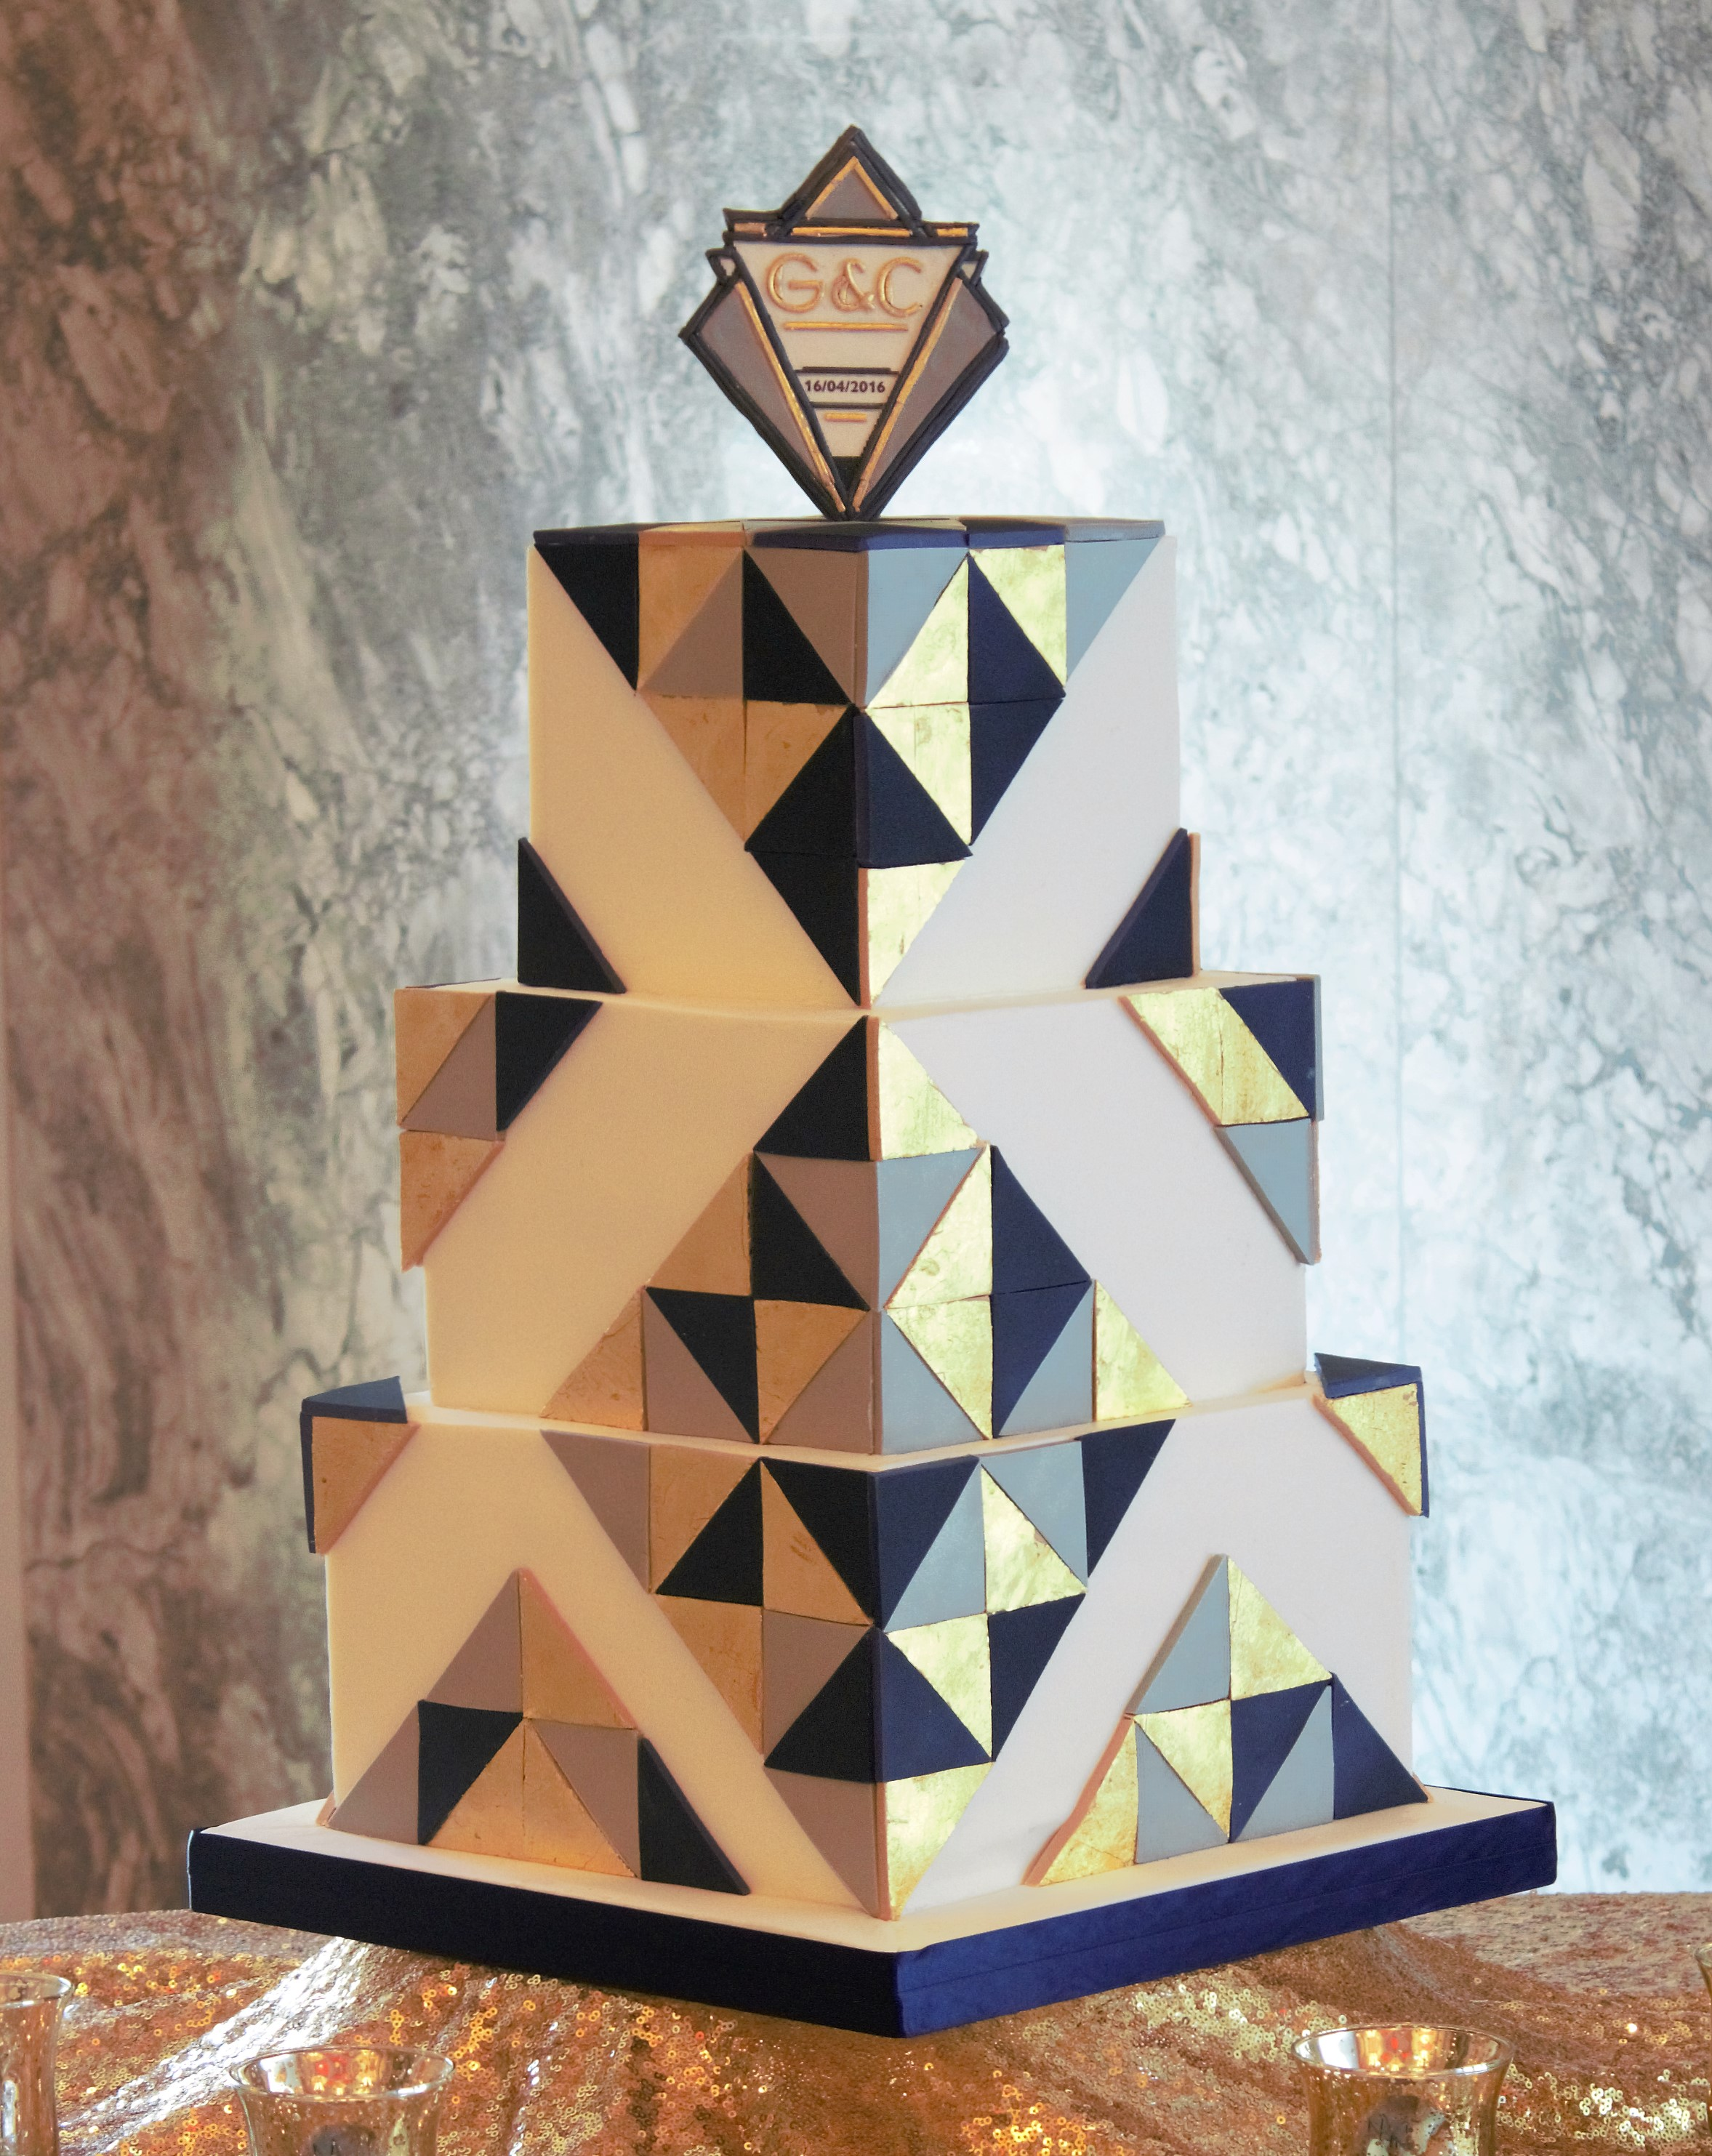 Square art deco wedding cake